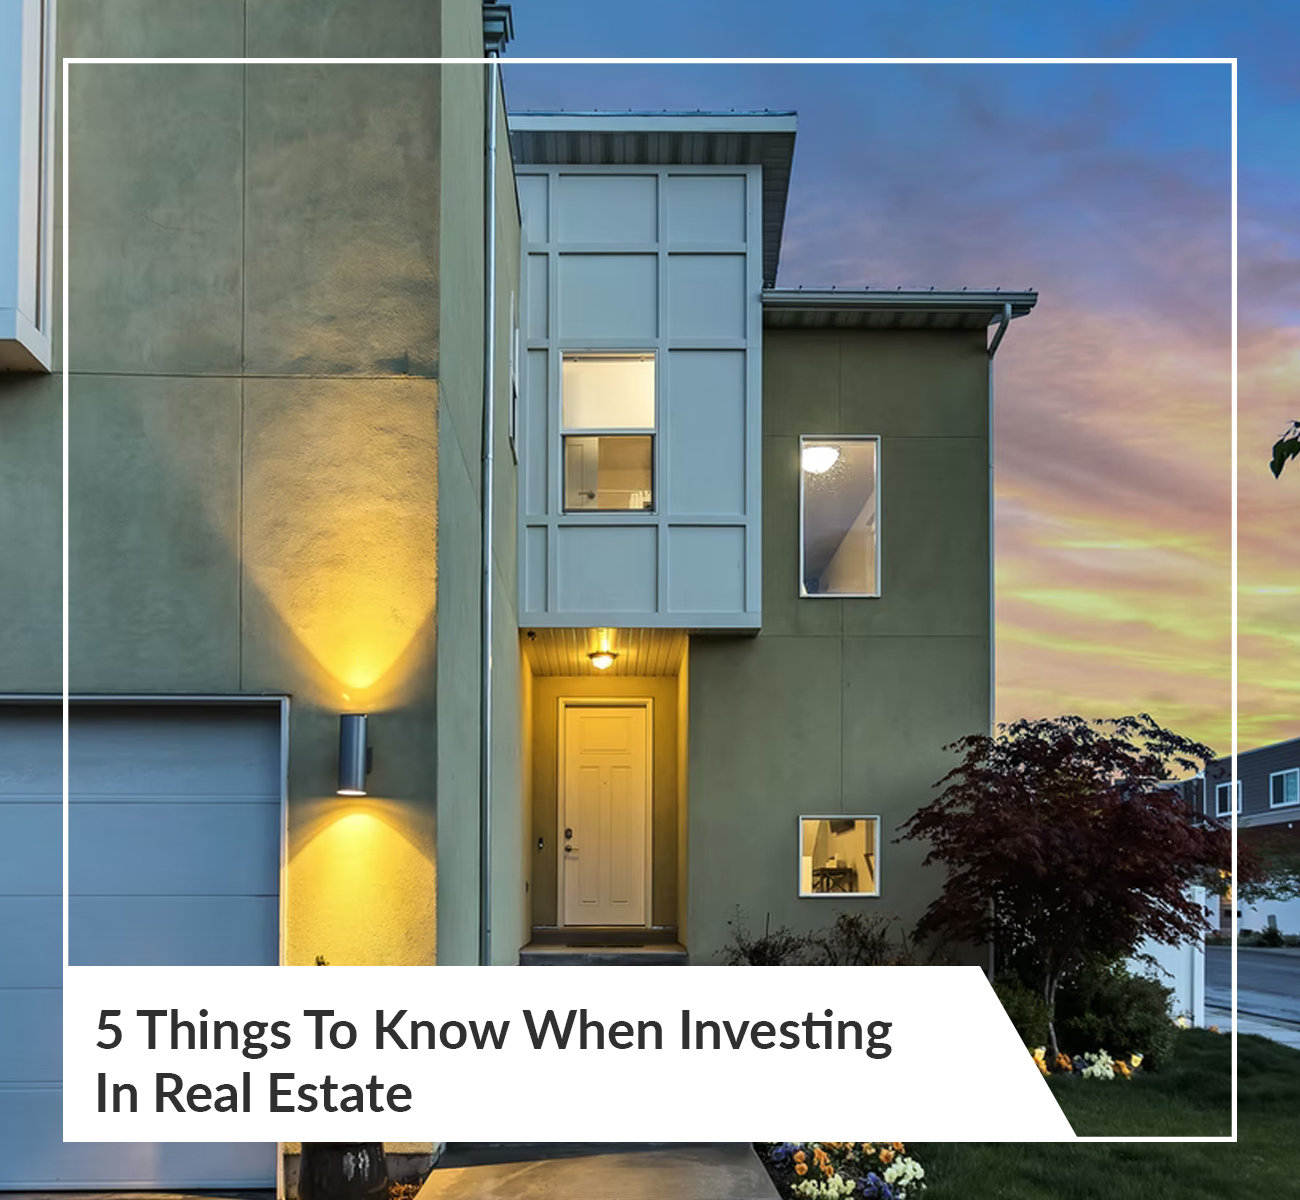 5 Things To Know When Investing In Real Estate